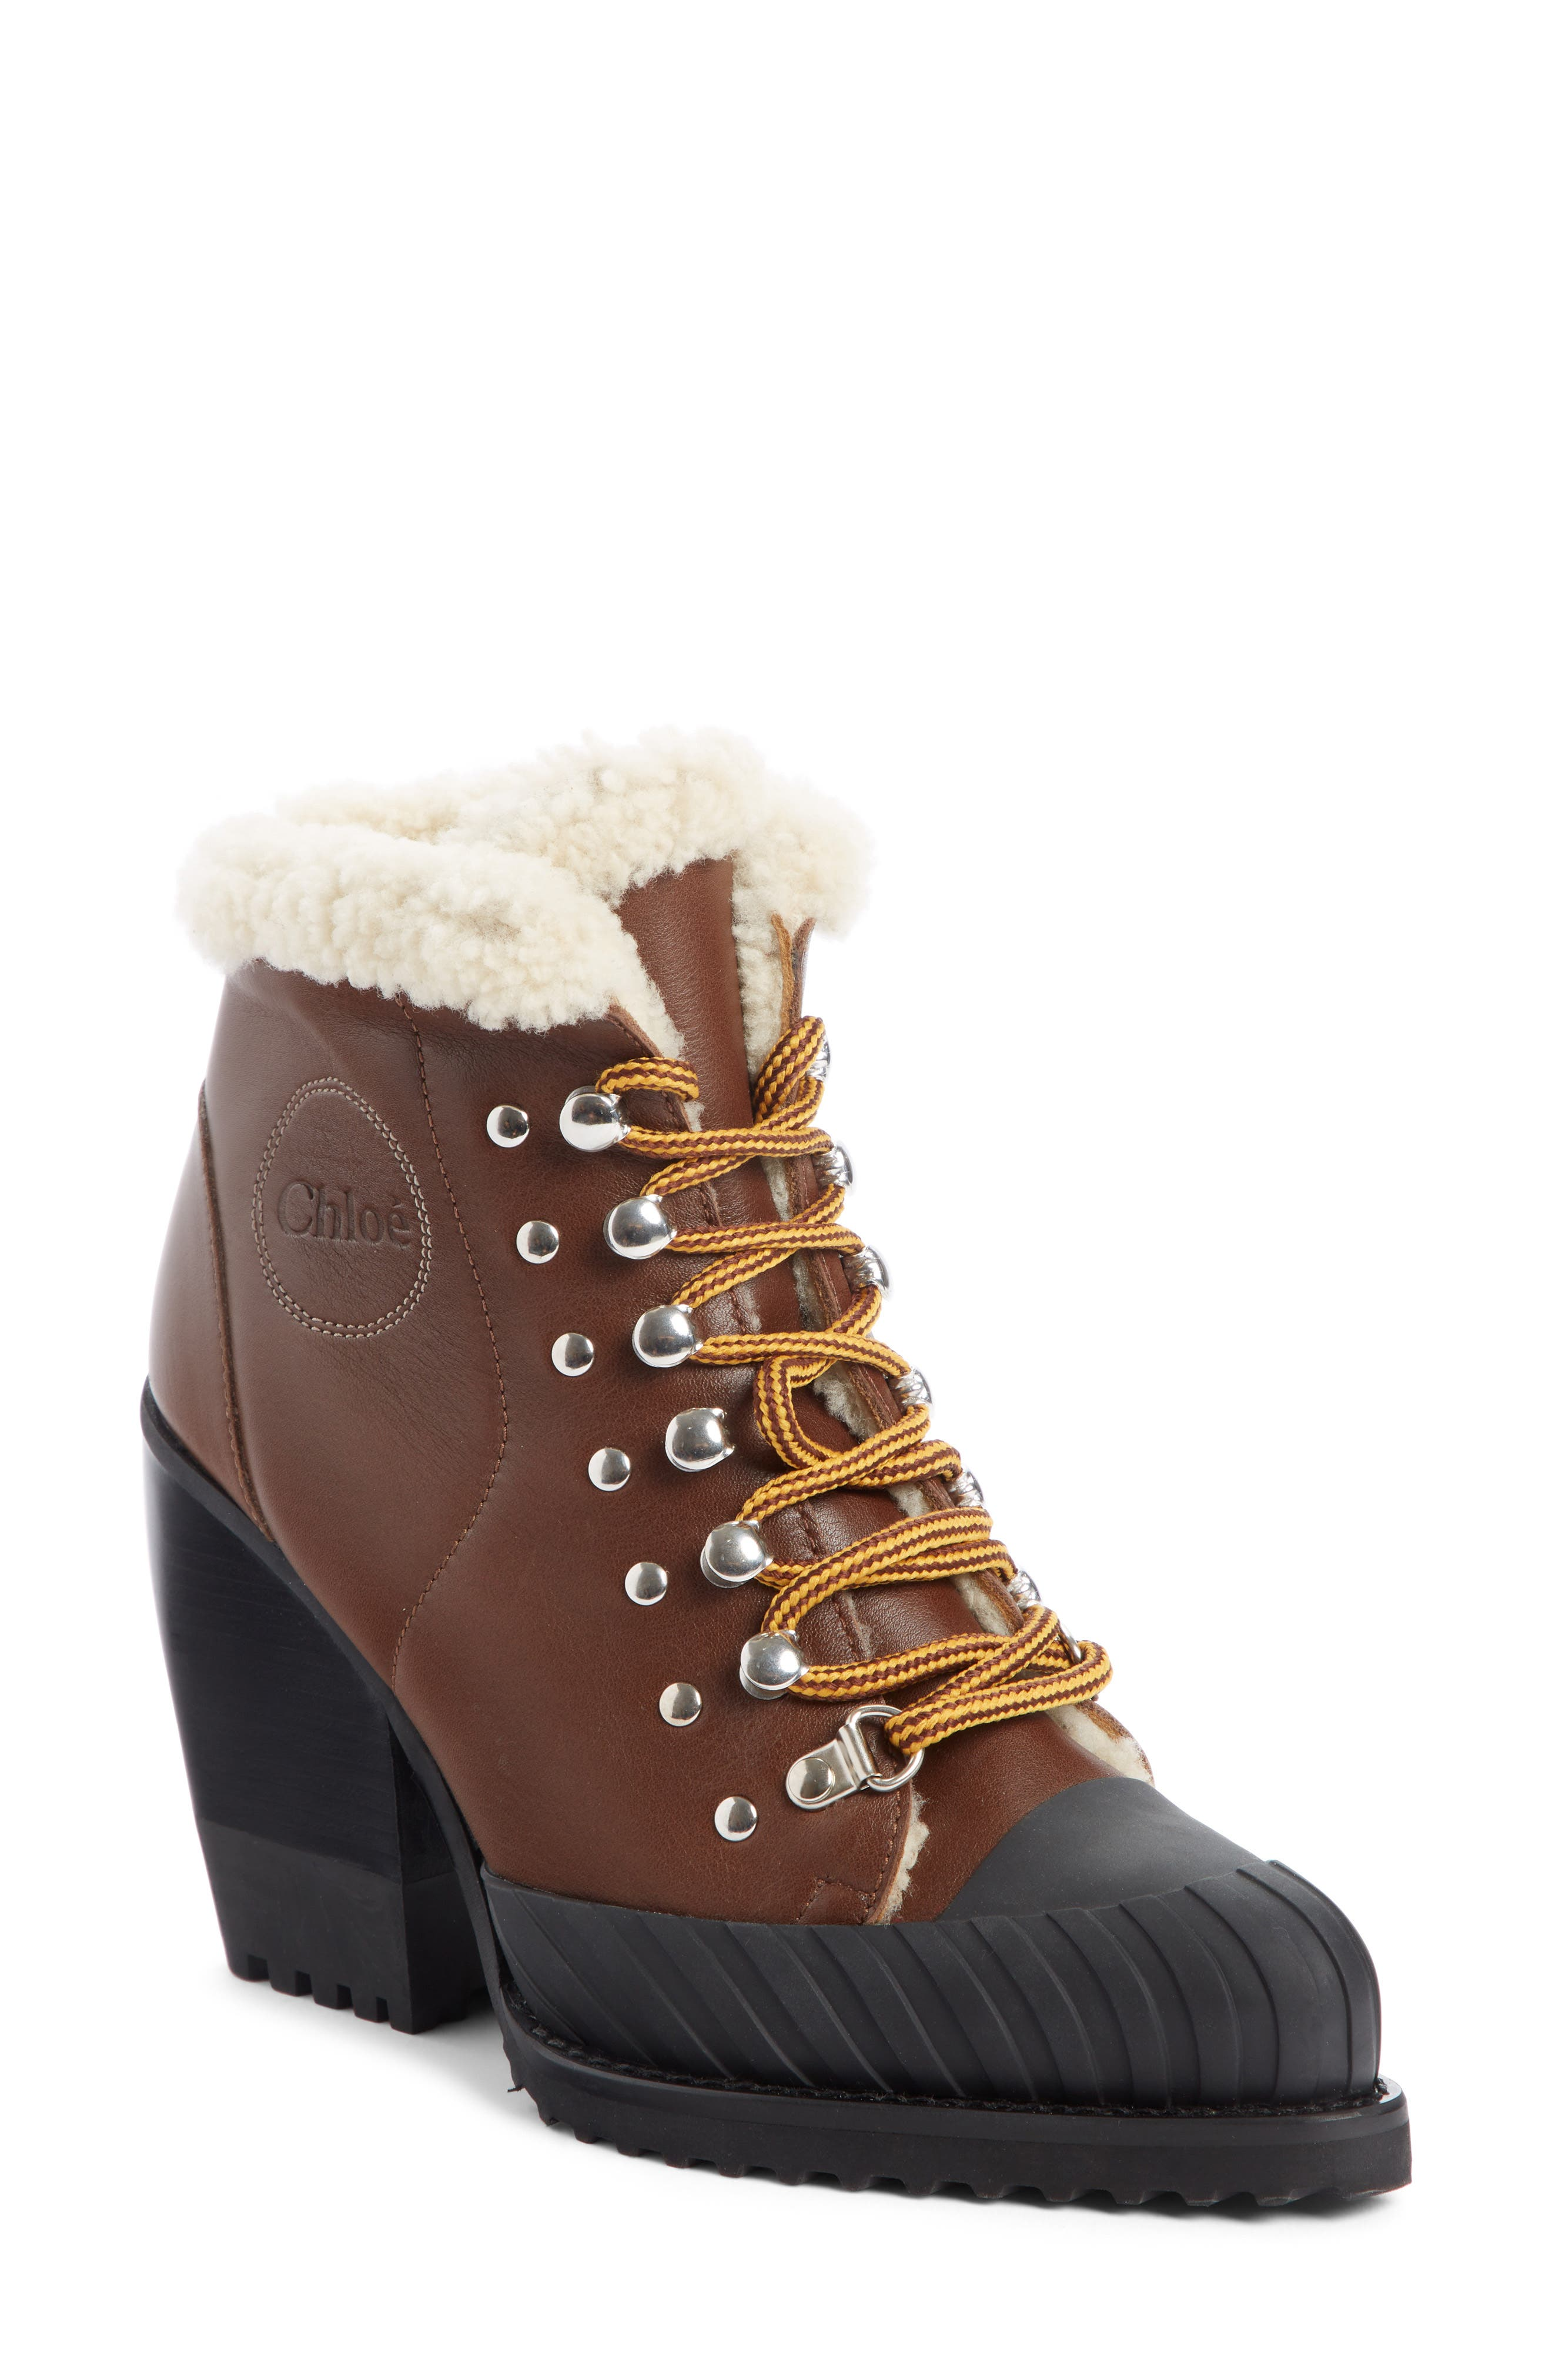 Chloe Rylee Genuine Shearling Lined Hiking Boot, Brown